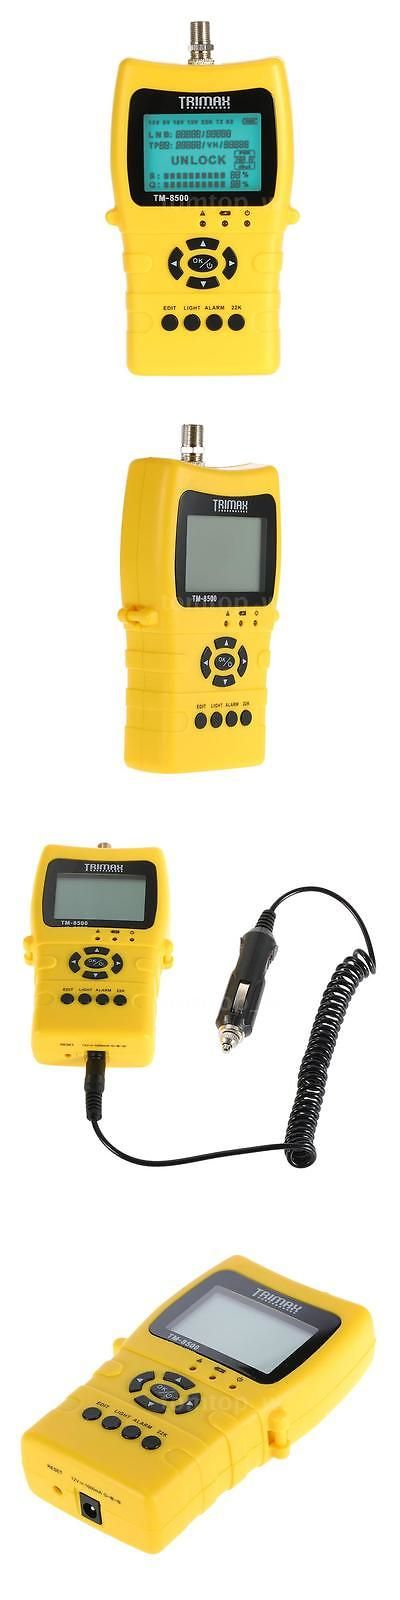 Signal Finders: Tm-8500 For Satellite Tv Signal Finder Lcd Dvb-S/ S2 Data Hd Digital Meter T0y5 BUY IT NOW ONLY: $63.95